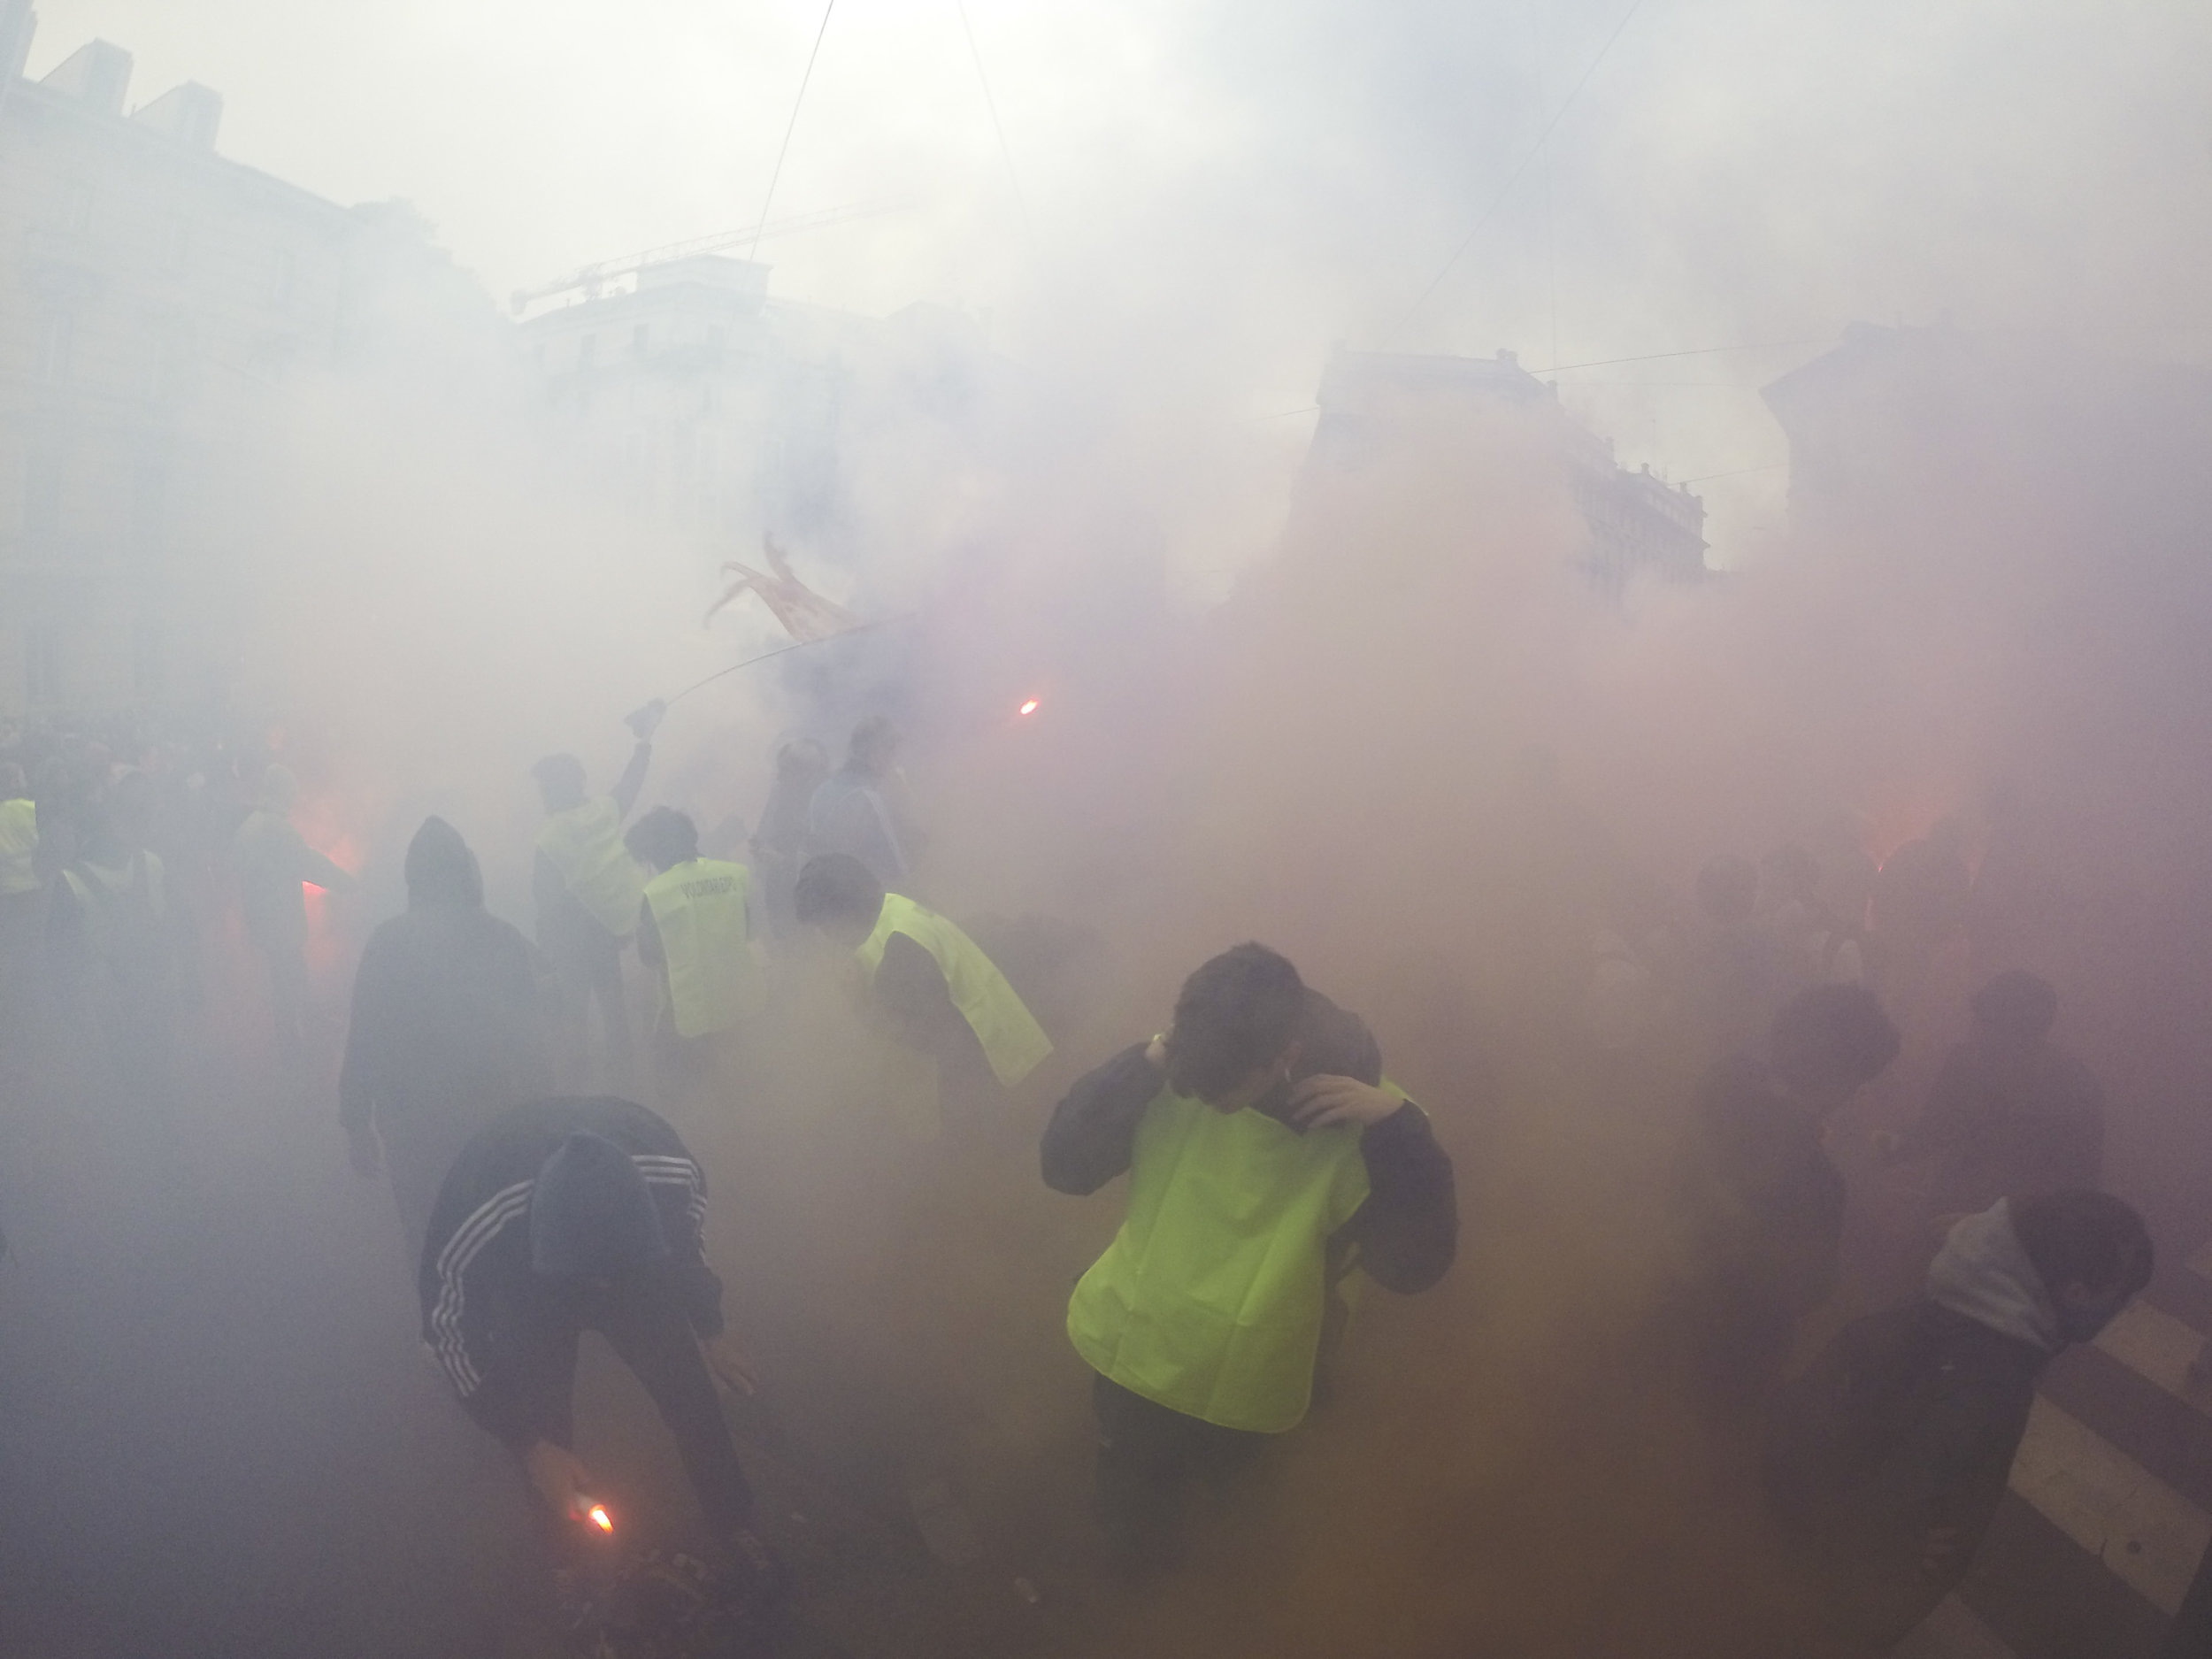 Violence overshadows a pacific No Expo march attended by 30,000 people  in Milan  as police and protesters clash